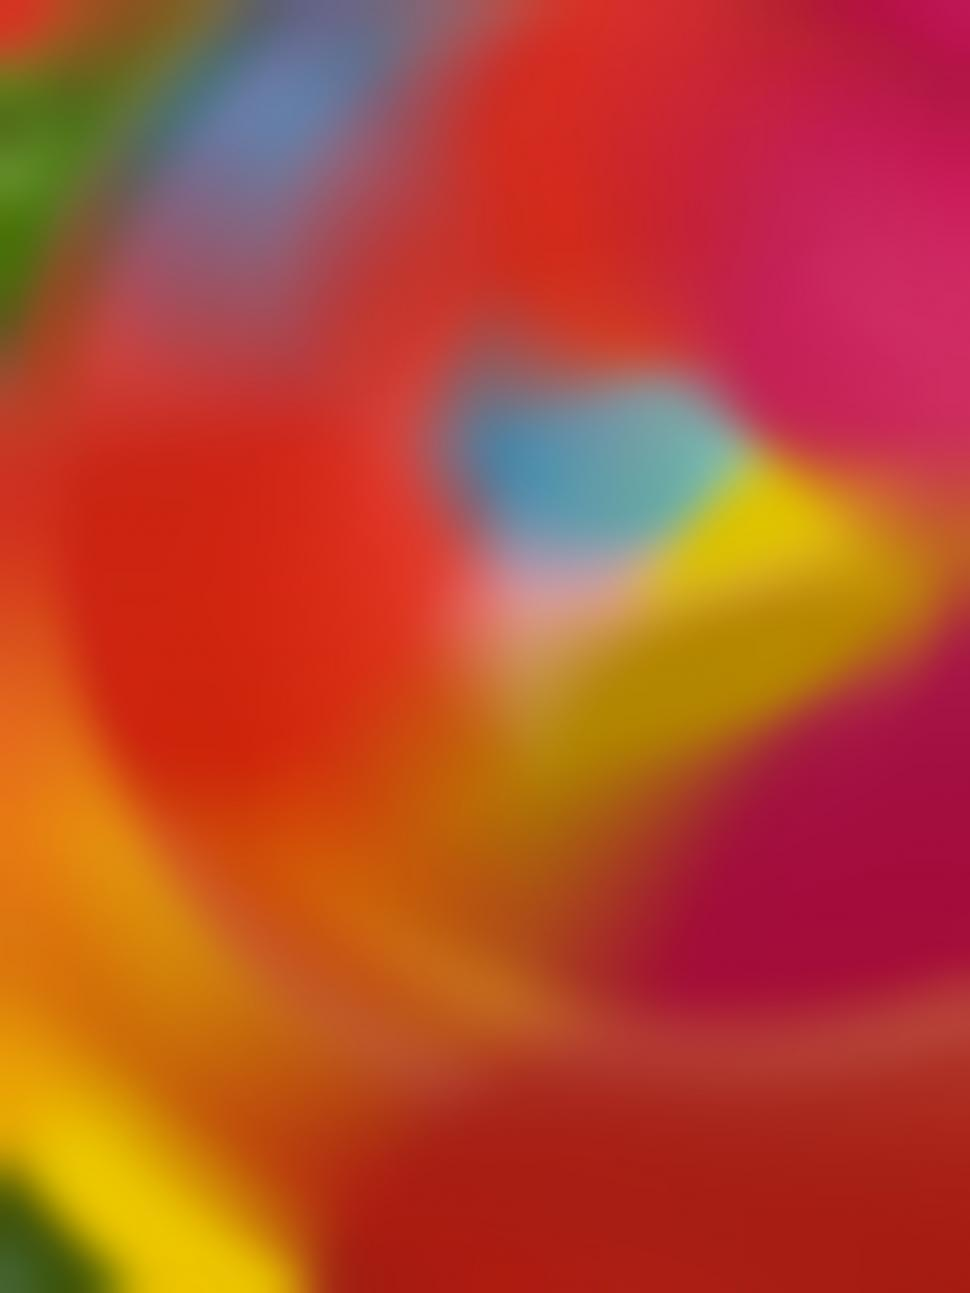 Download Free Stock HD Photo of Colorful Blurry Abstract Background Online